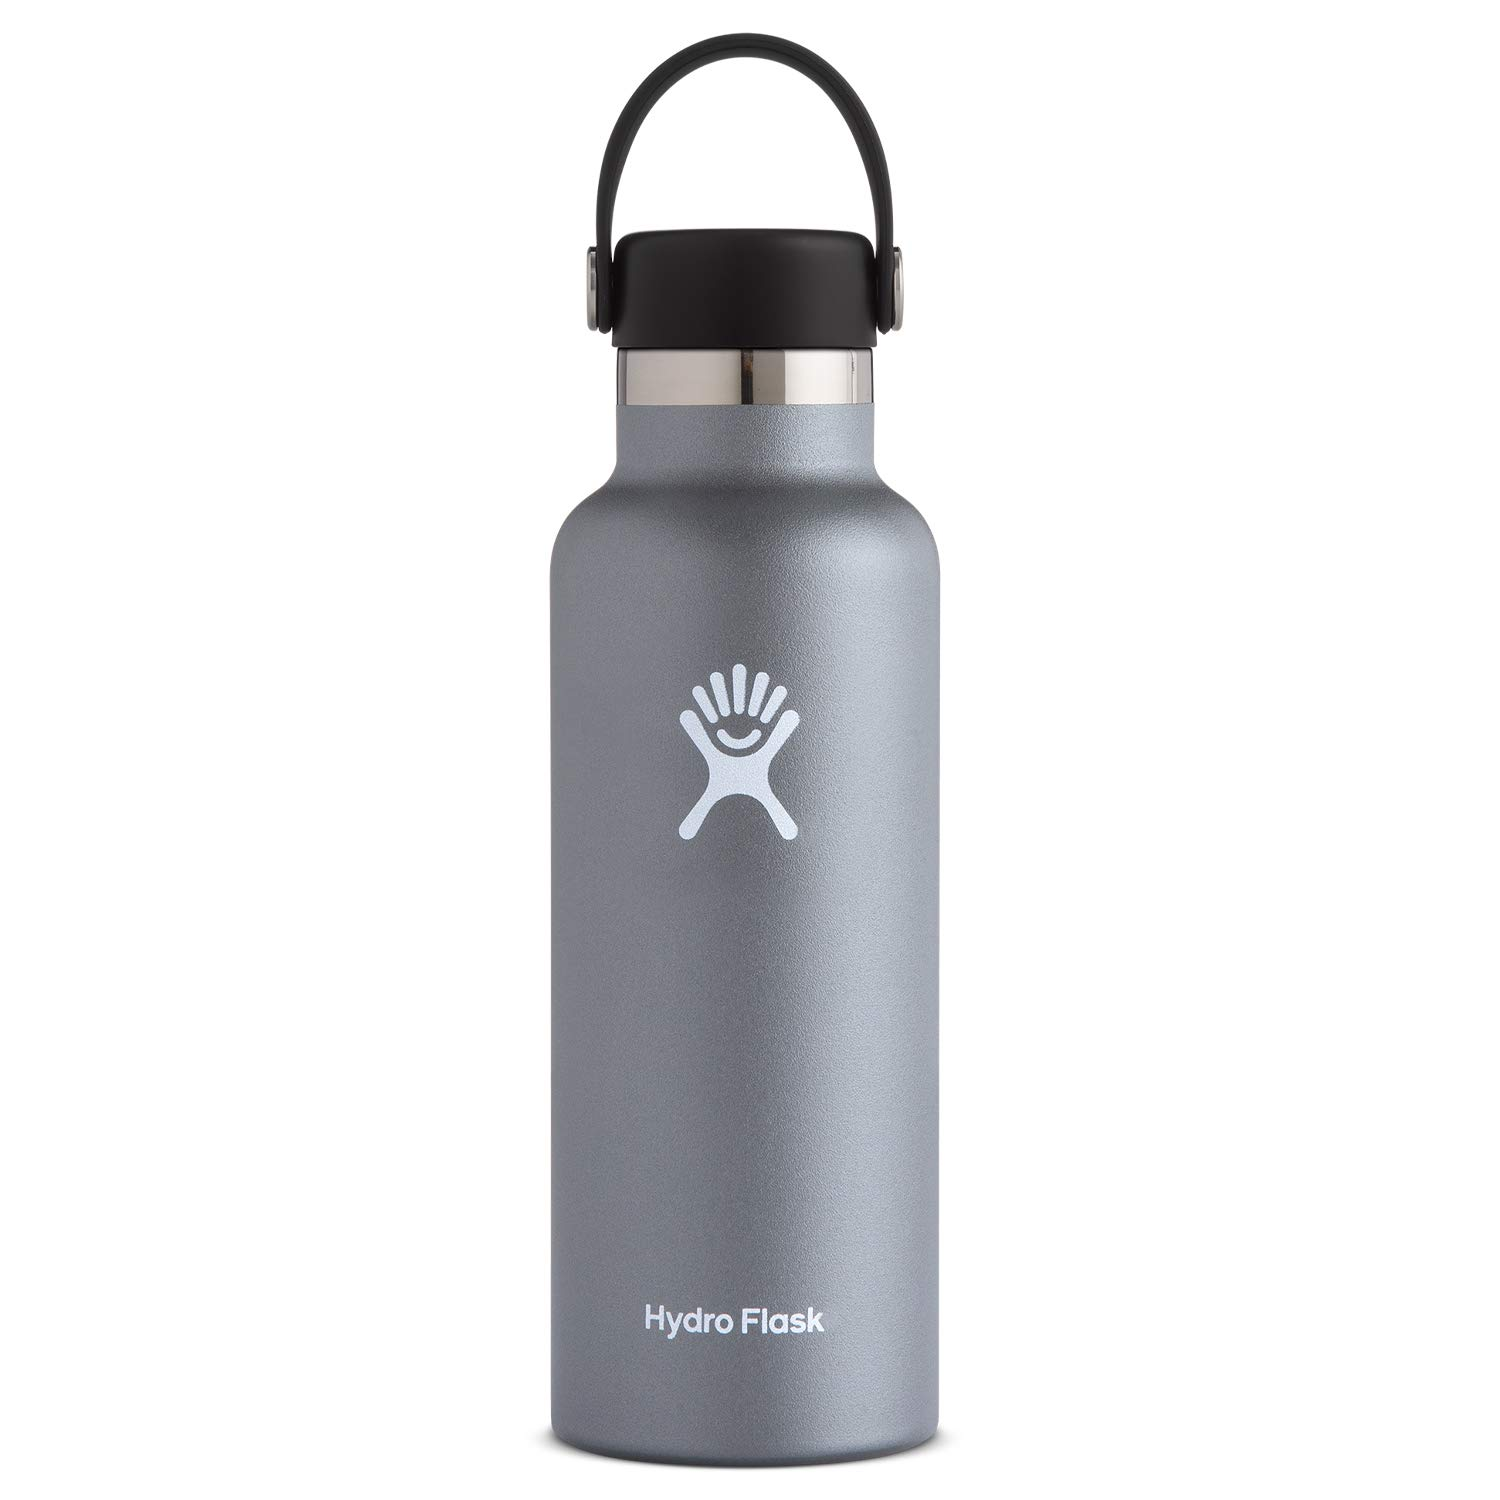 Hydro Flask Water Bottle - Stainless Steel & Vacuum Insulated - Standard Mouth with Leak Proof Flex Cap - 18 oz, Graphite by Hydro Flask